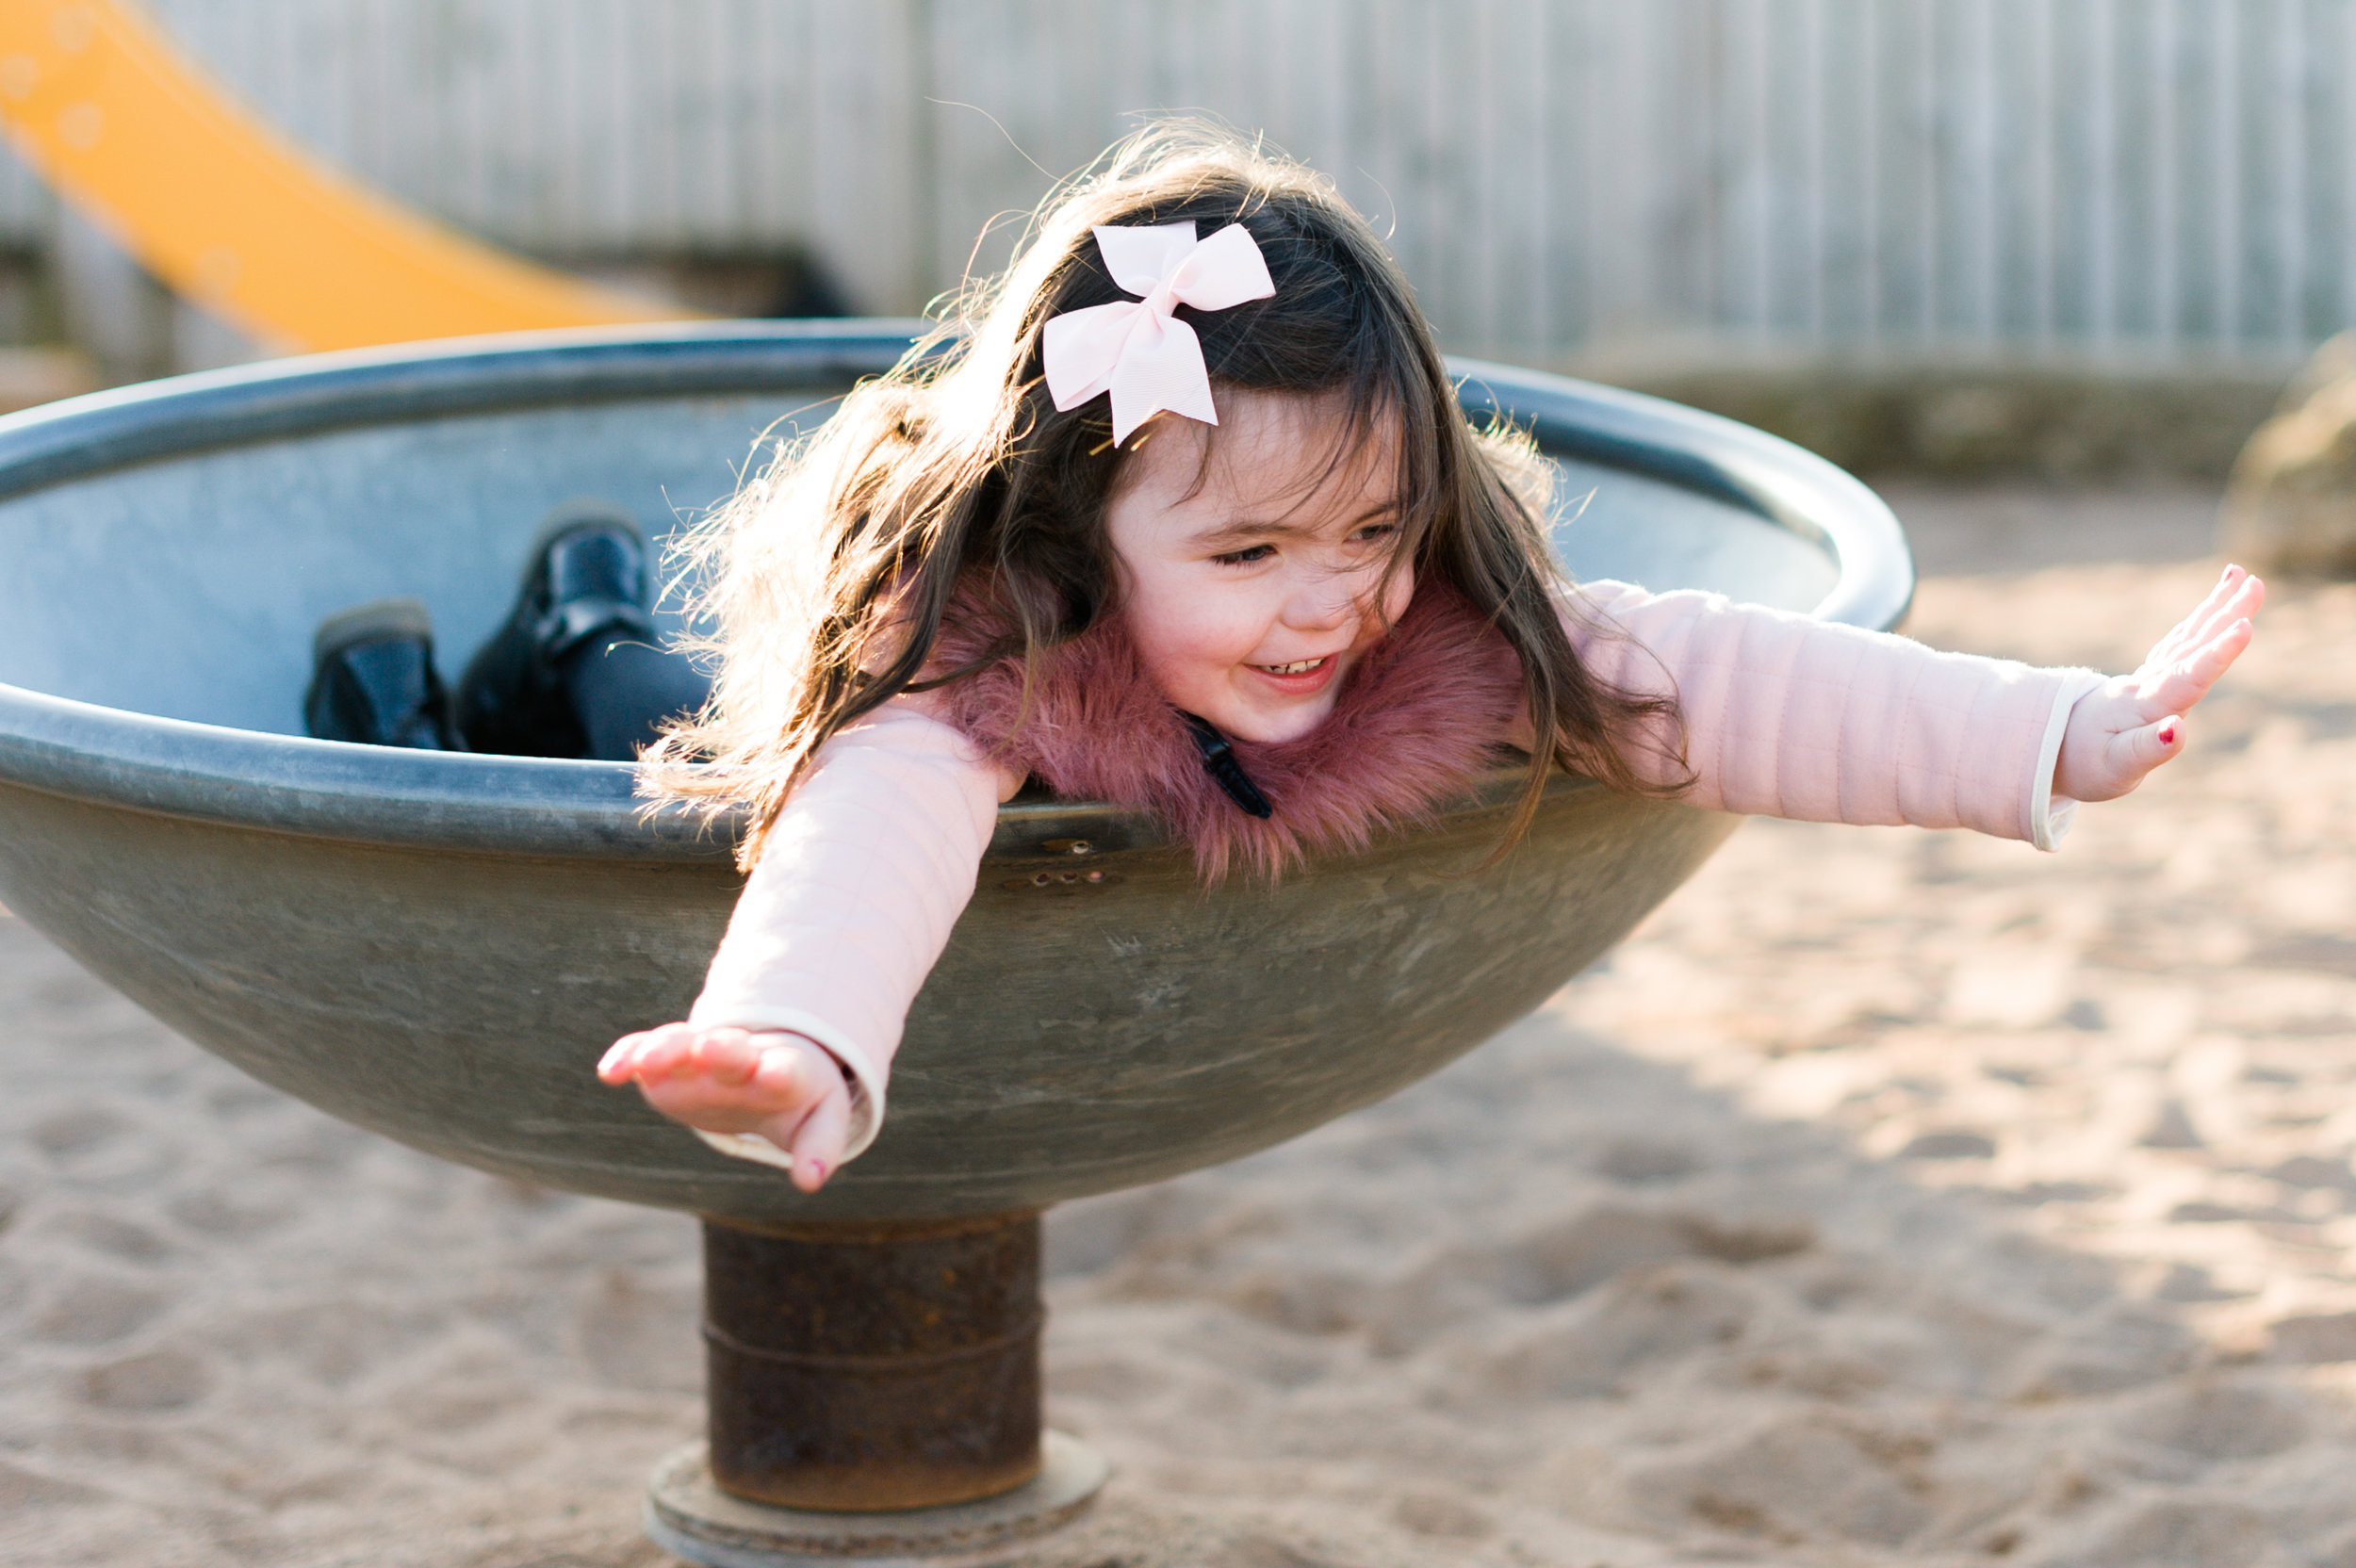 Carnoustie beach park playing spring